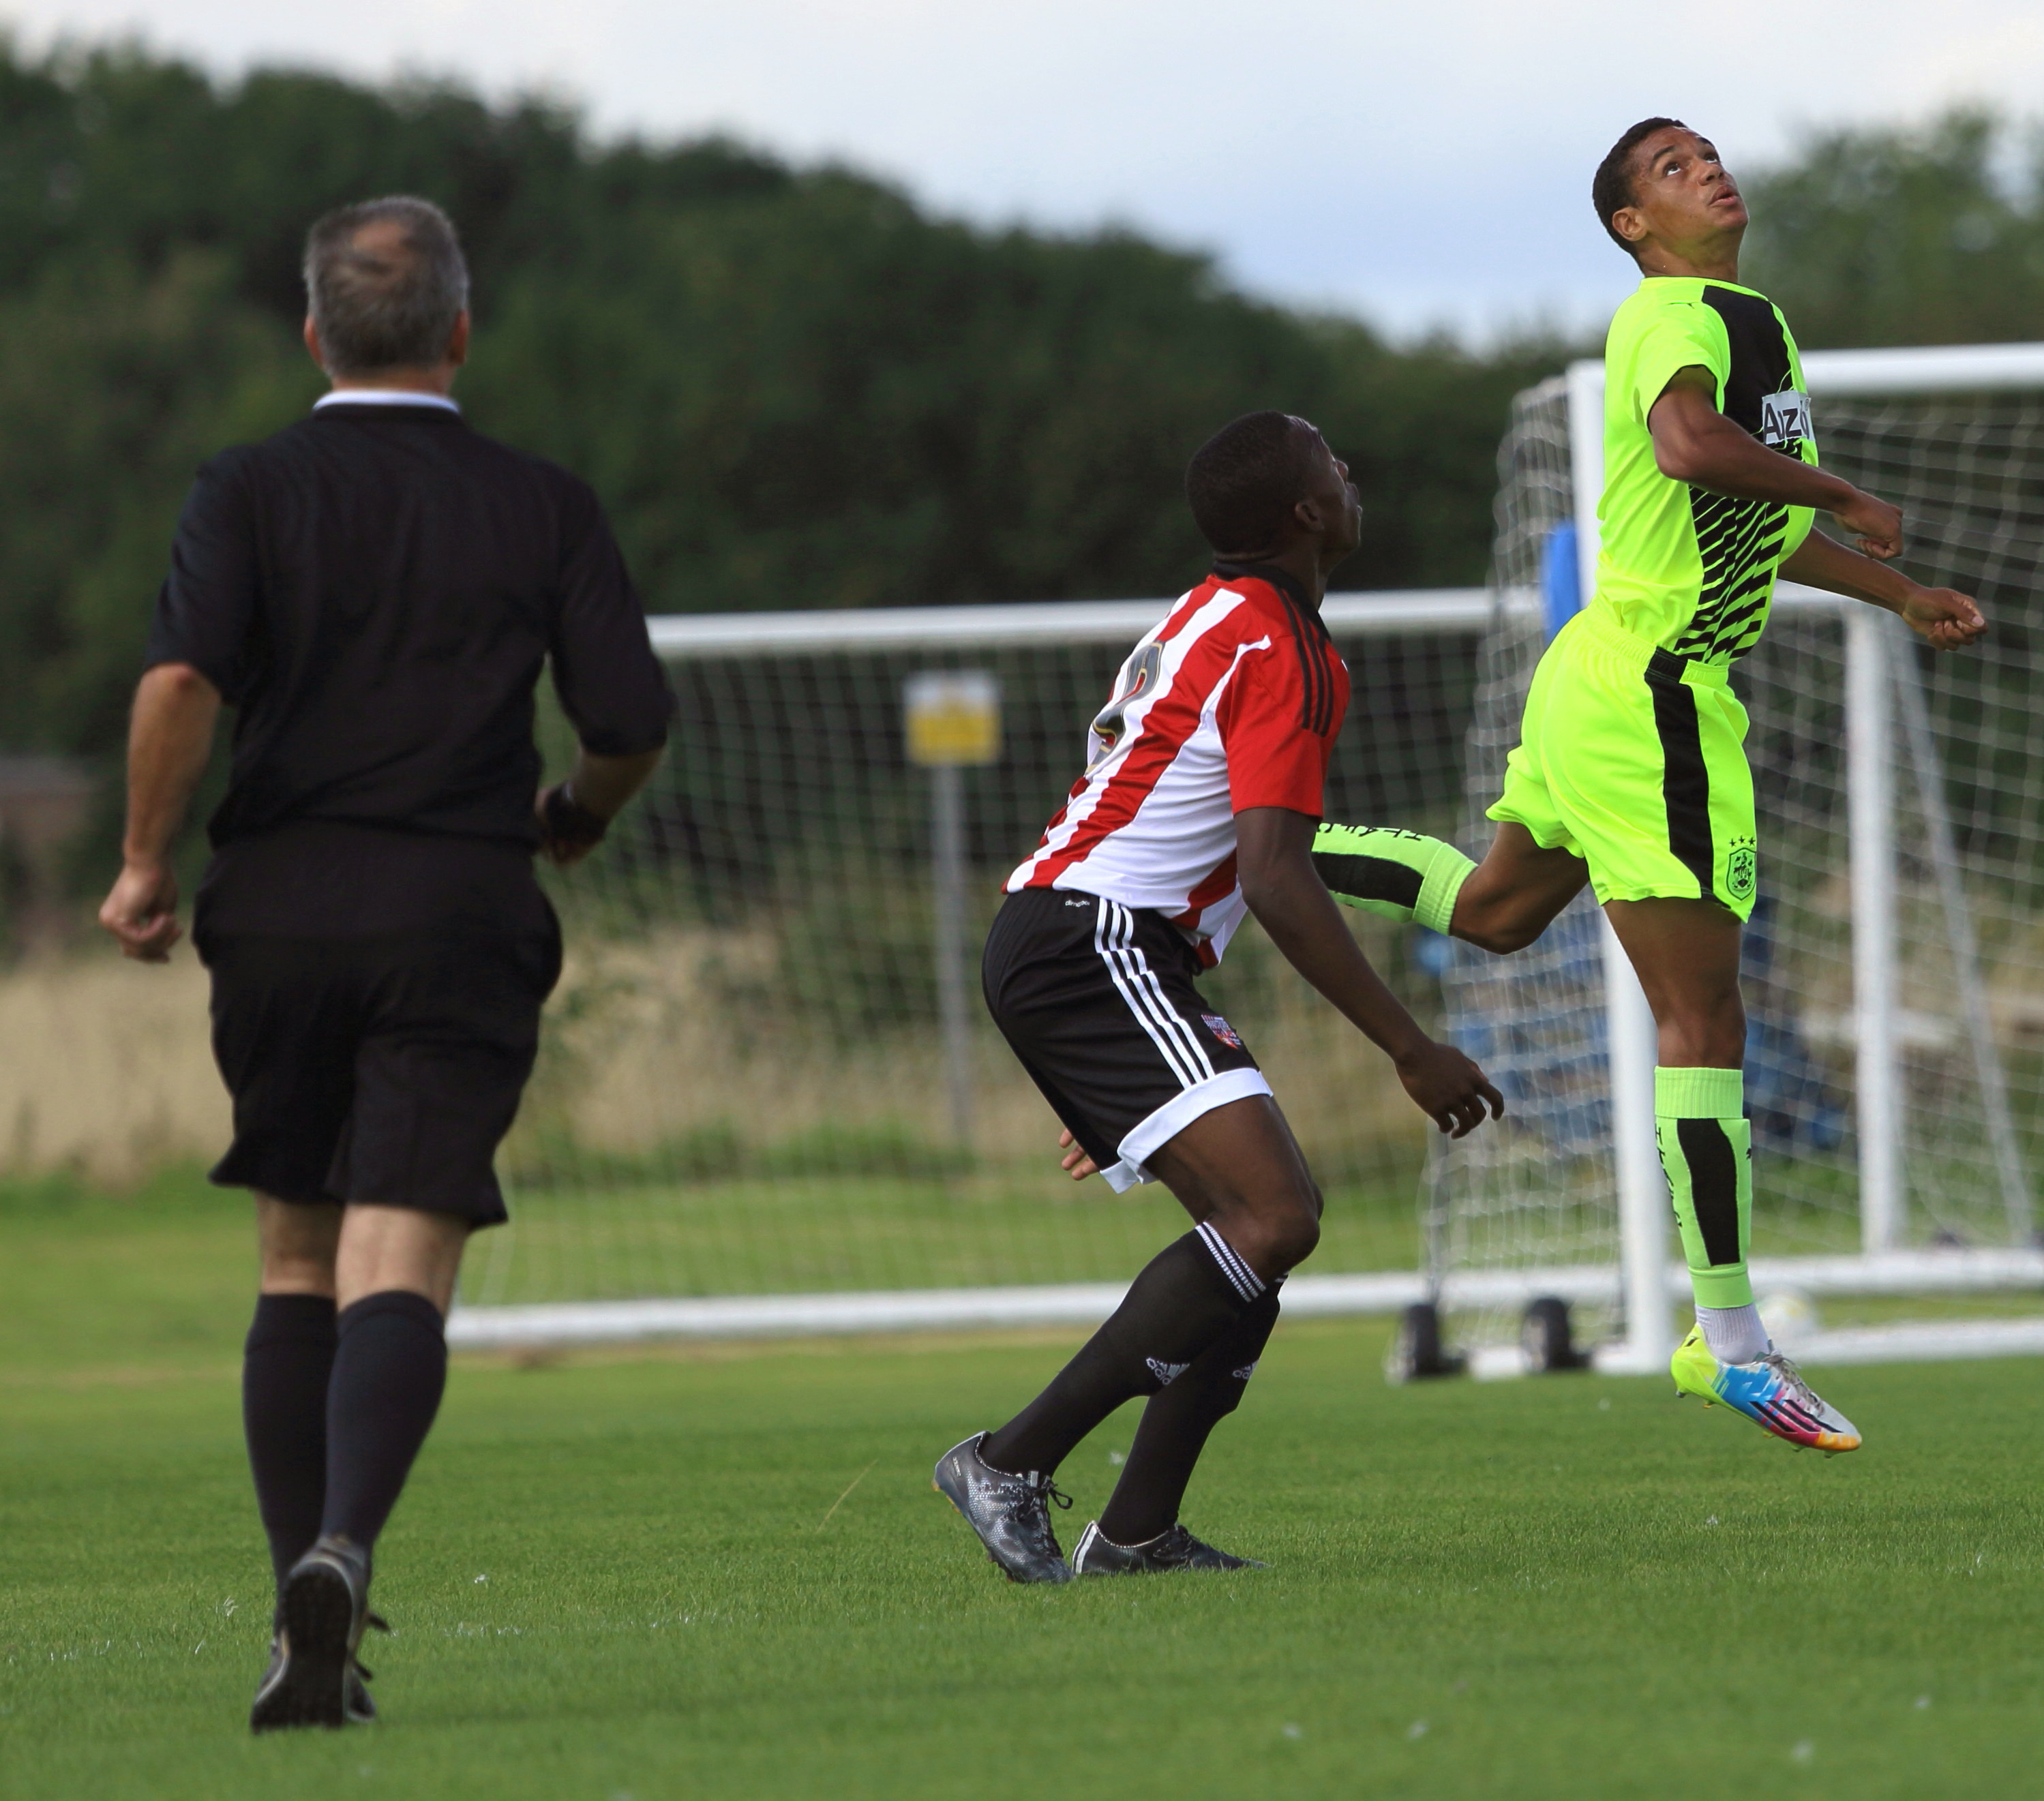 Brentford v Huddersfield Under 18. Sept 2015